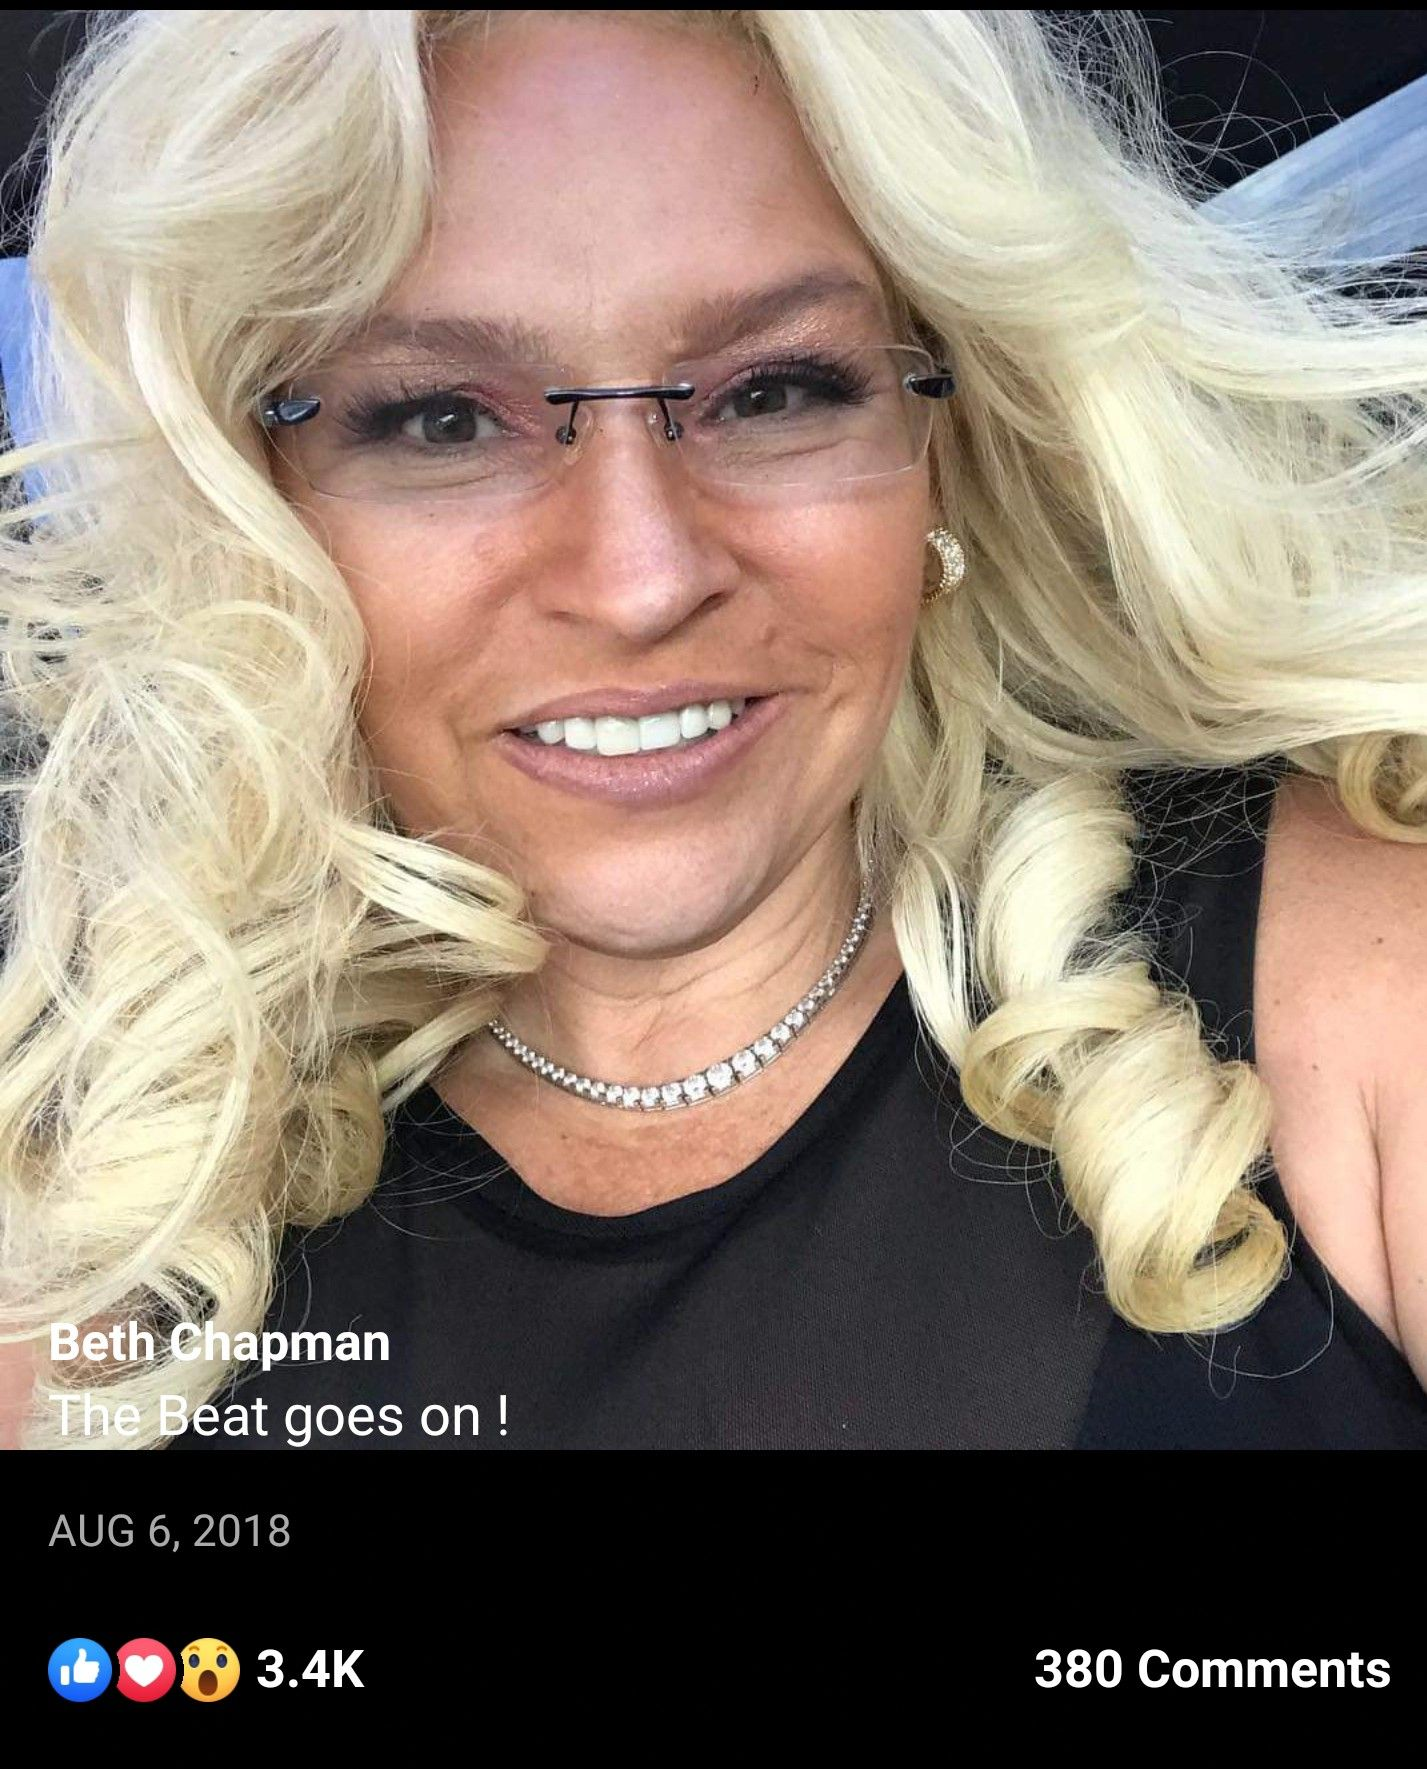 Pictures Of Dog The Bounty Hunter Spouses